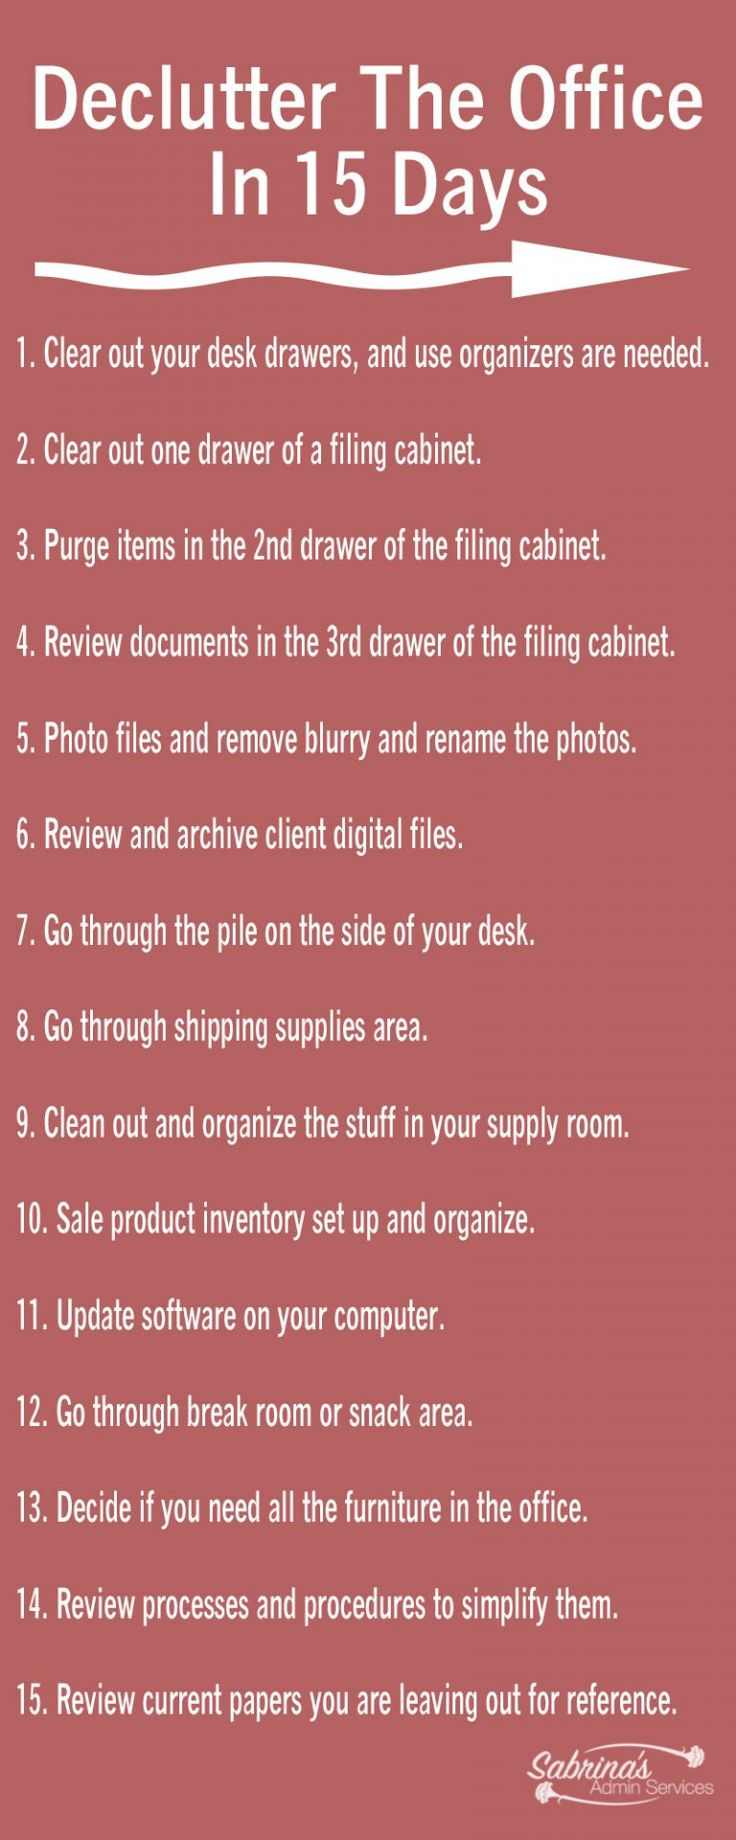 Declutter The Office In 15 Days - business organization tips to streamline your office space by @smqorgadm - sabrinasadminservices.com